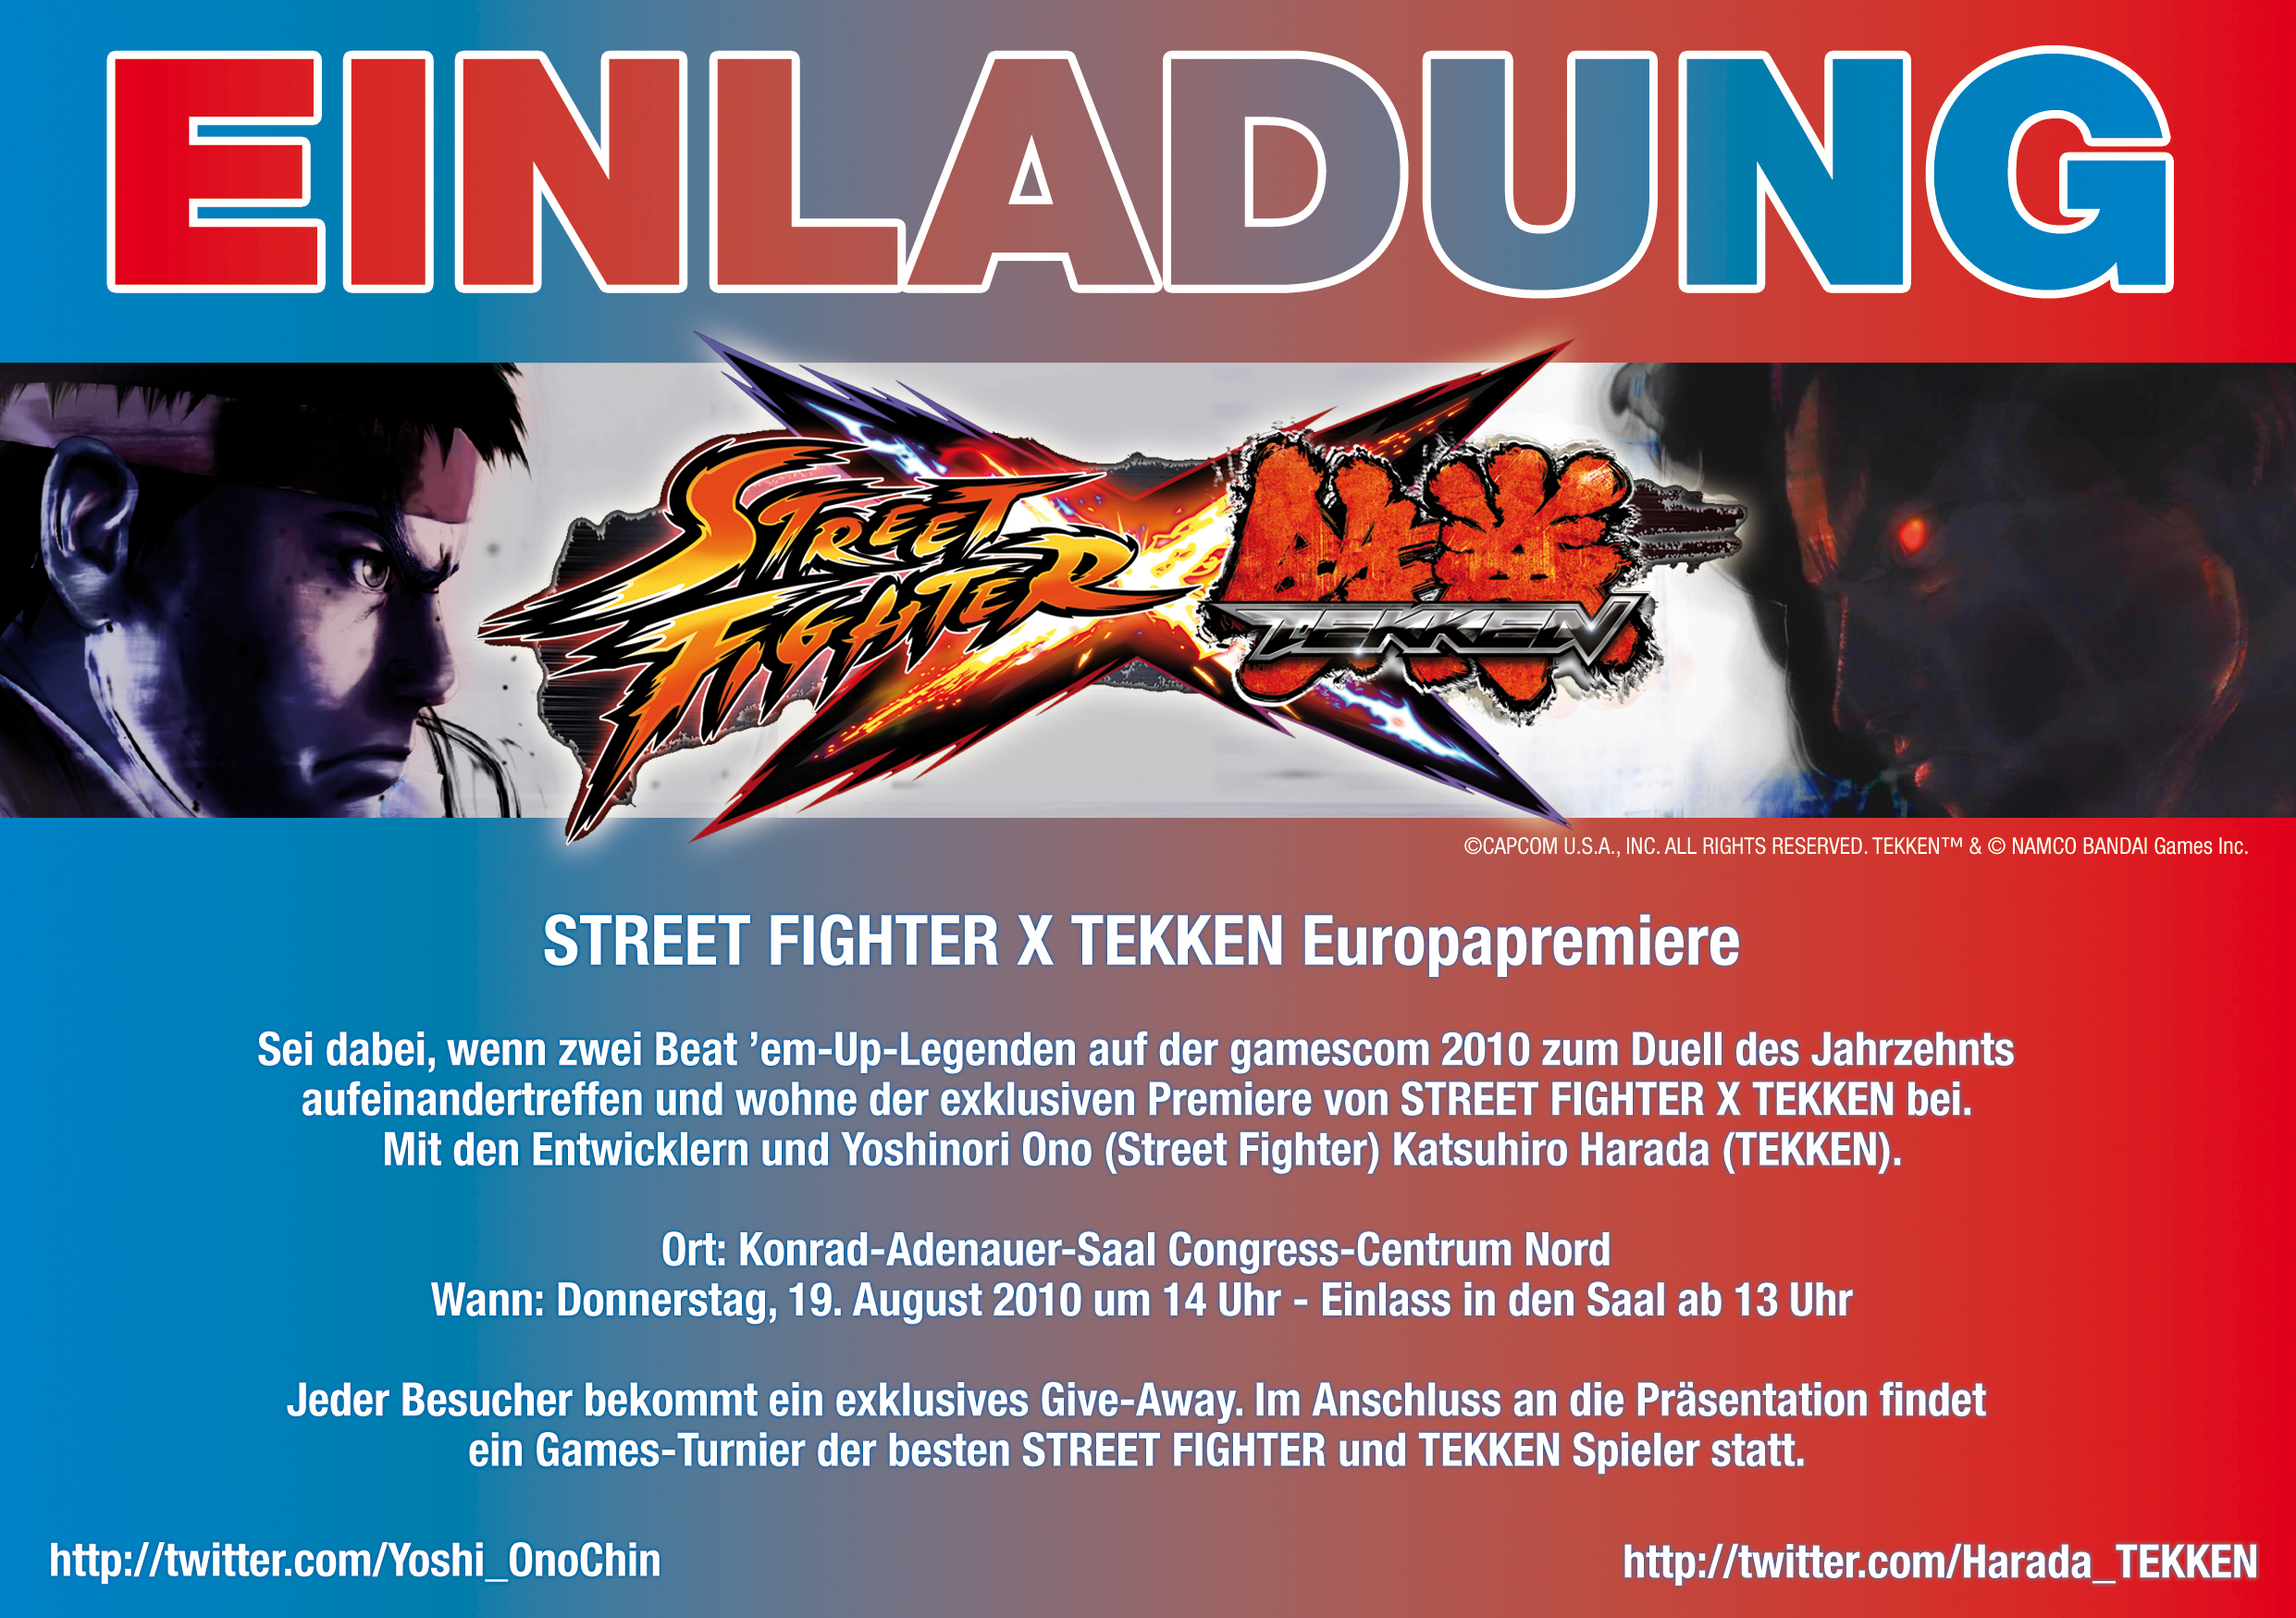 STREET FIGHTER X TEKKEN European Premiere    IPLAYWINNER   FIGHTING     Post a Comment